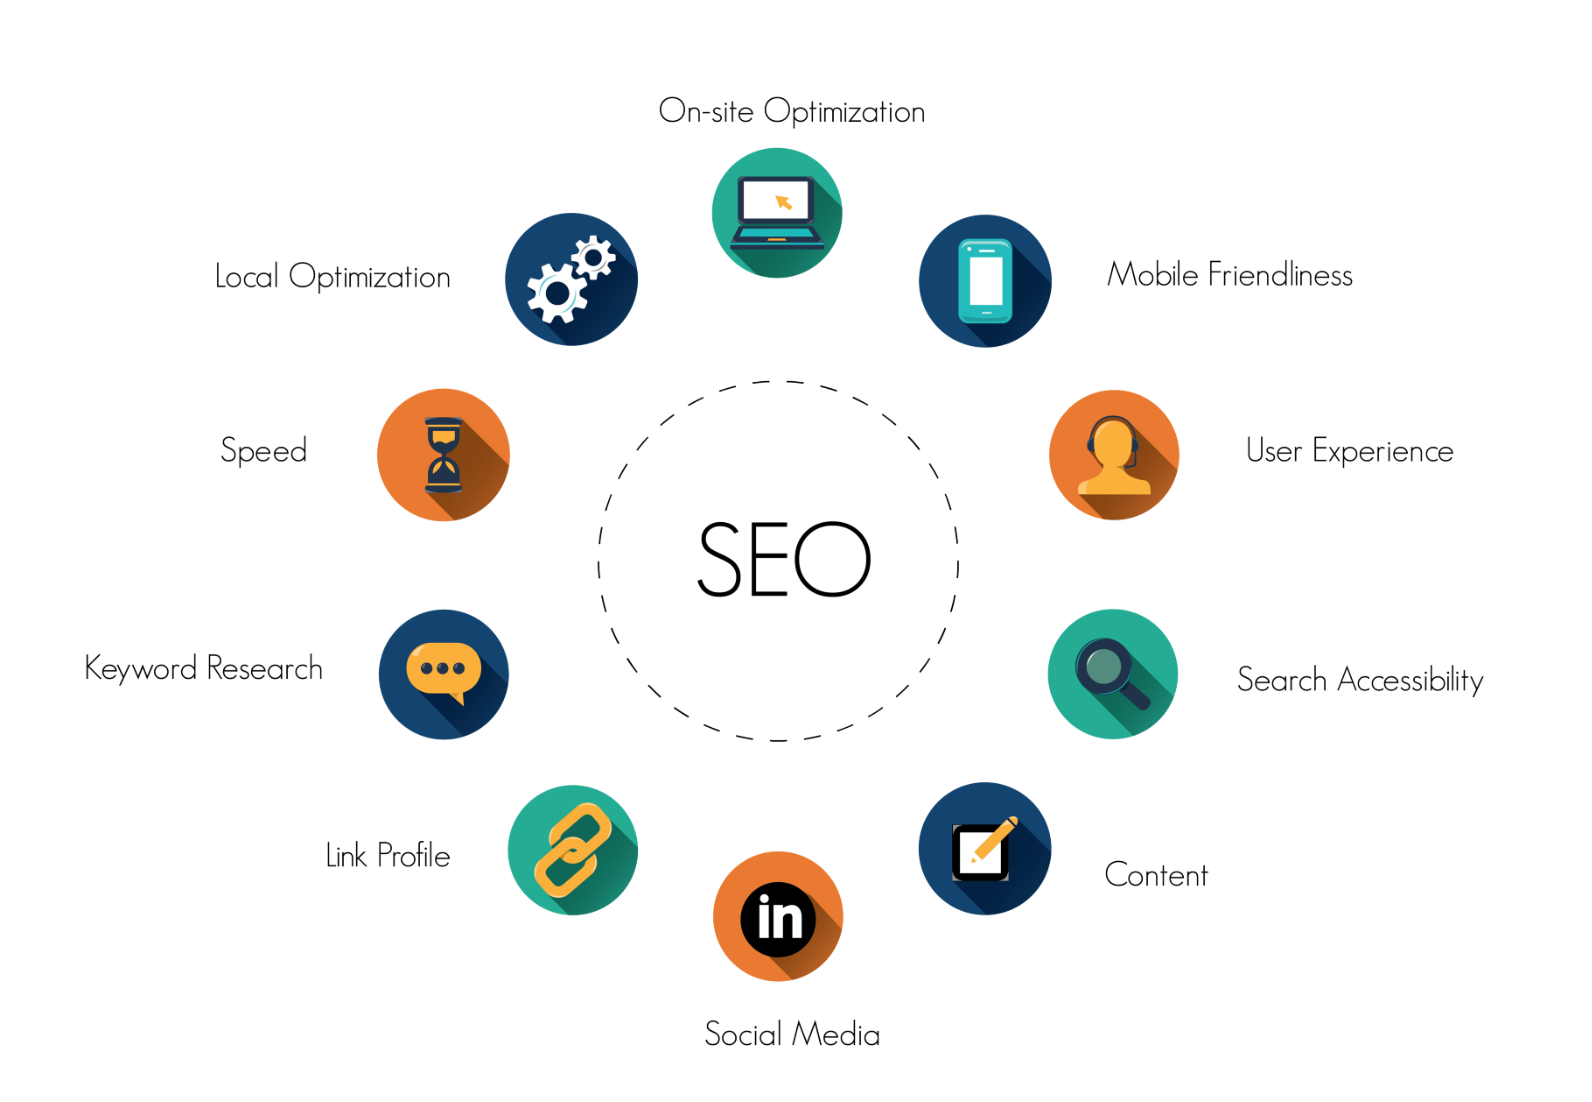 Jenis Digital Marketing - Search Engine Optimization (SEO)